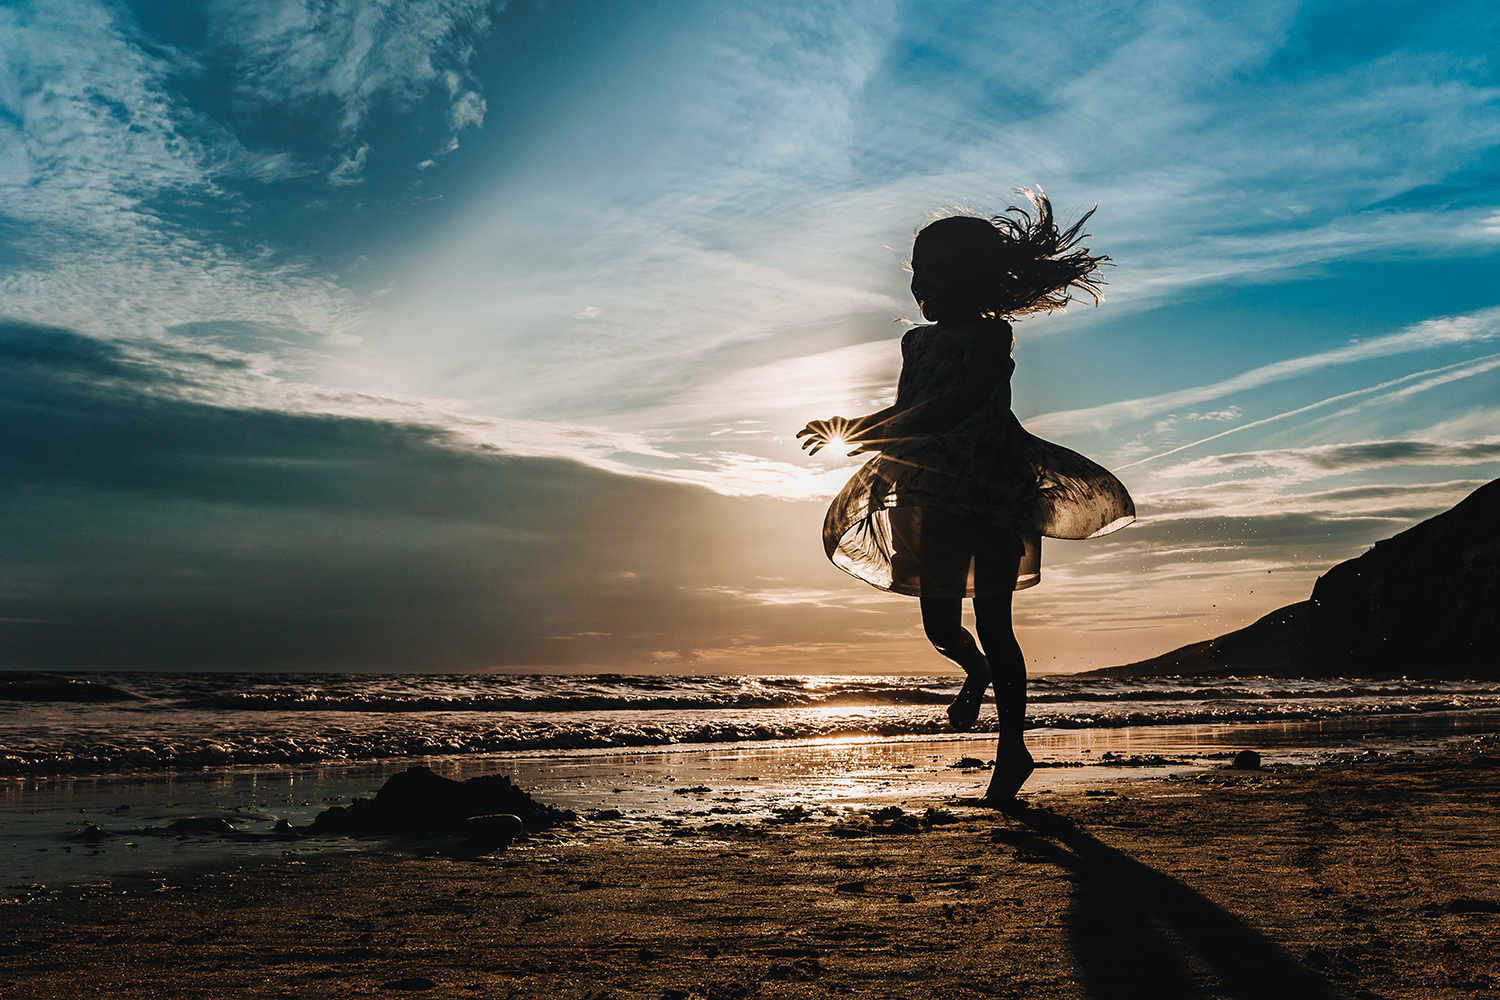 silhouette image of girl dancing on the beach at sunset